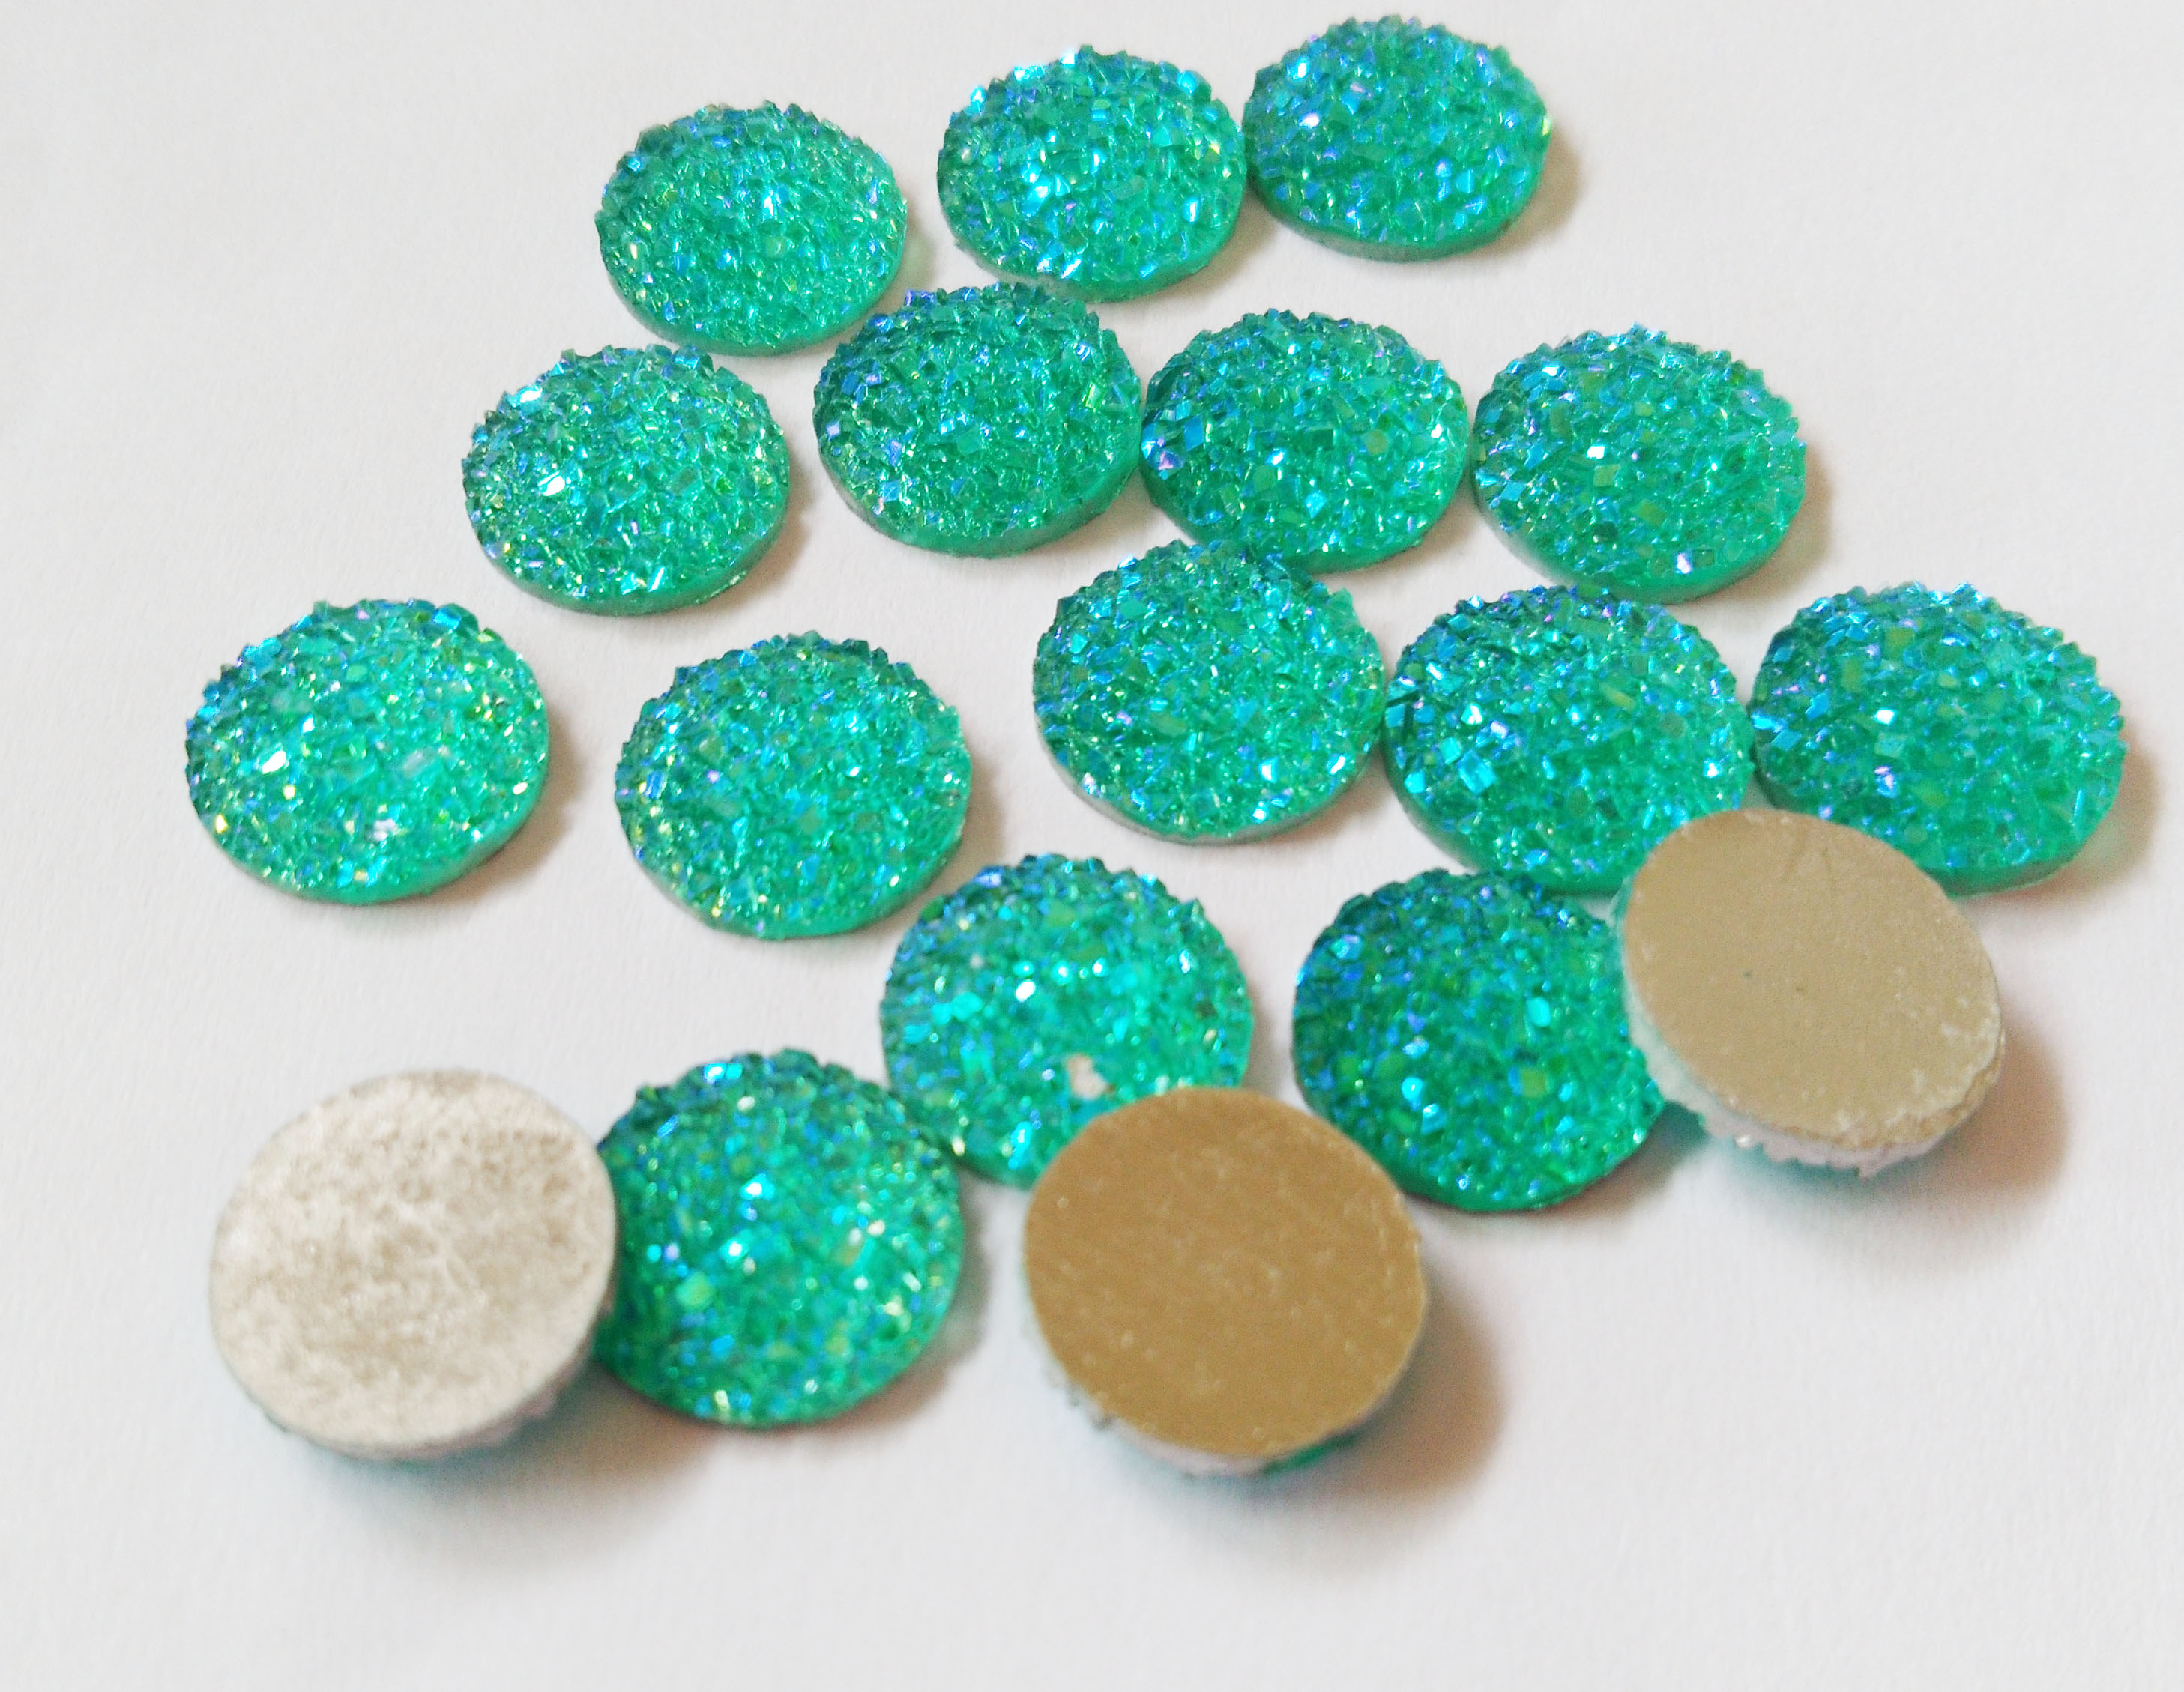 10pcs/lot Circle Glitter Resin Green Druzy Cabochons druzy beads12mm For DIY Druzy Jewellery Making